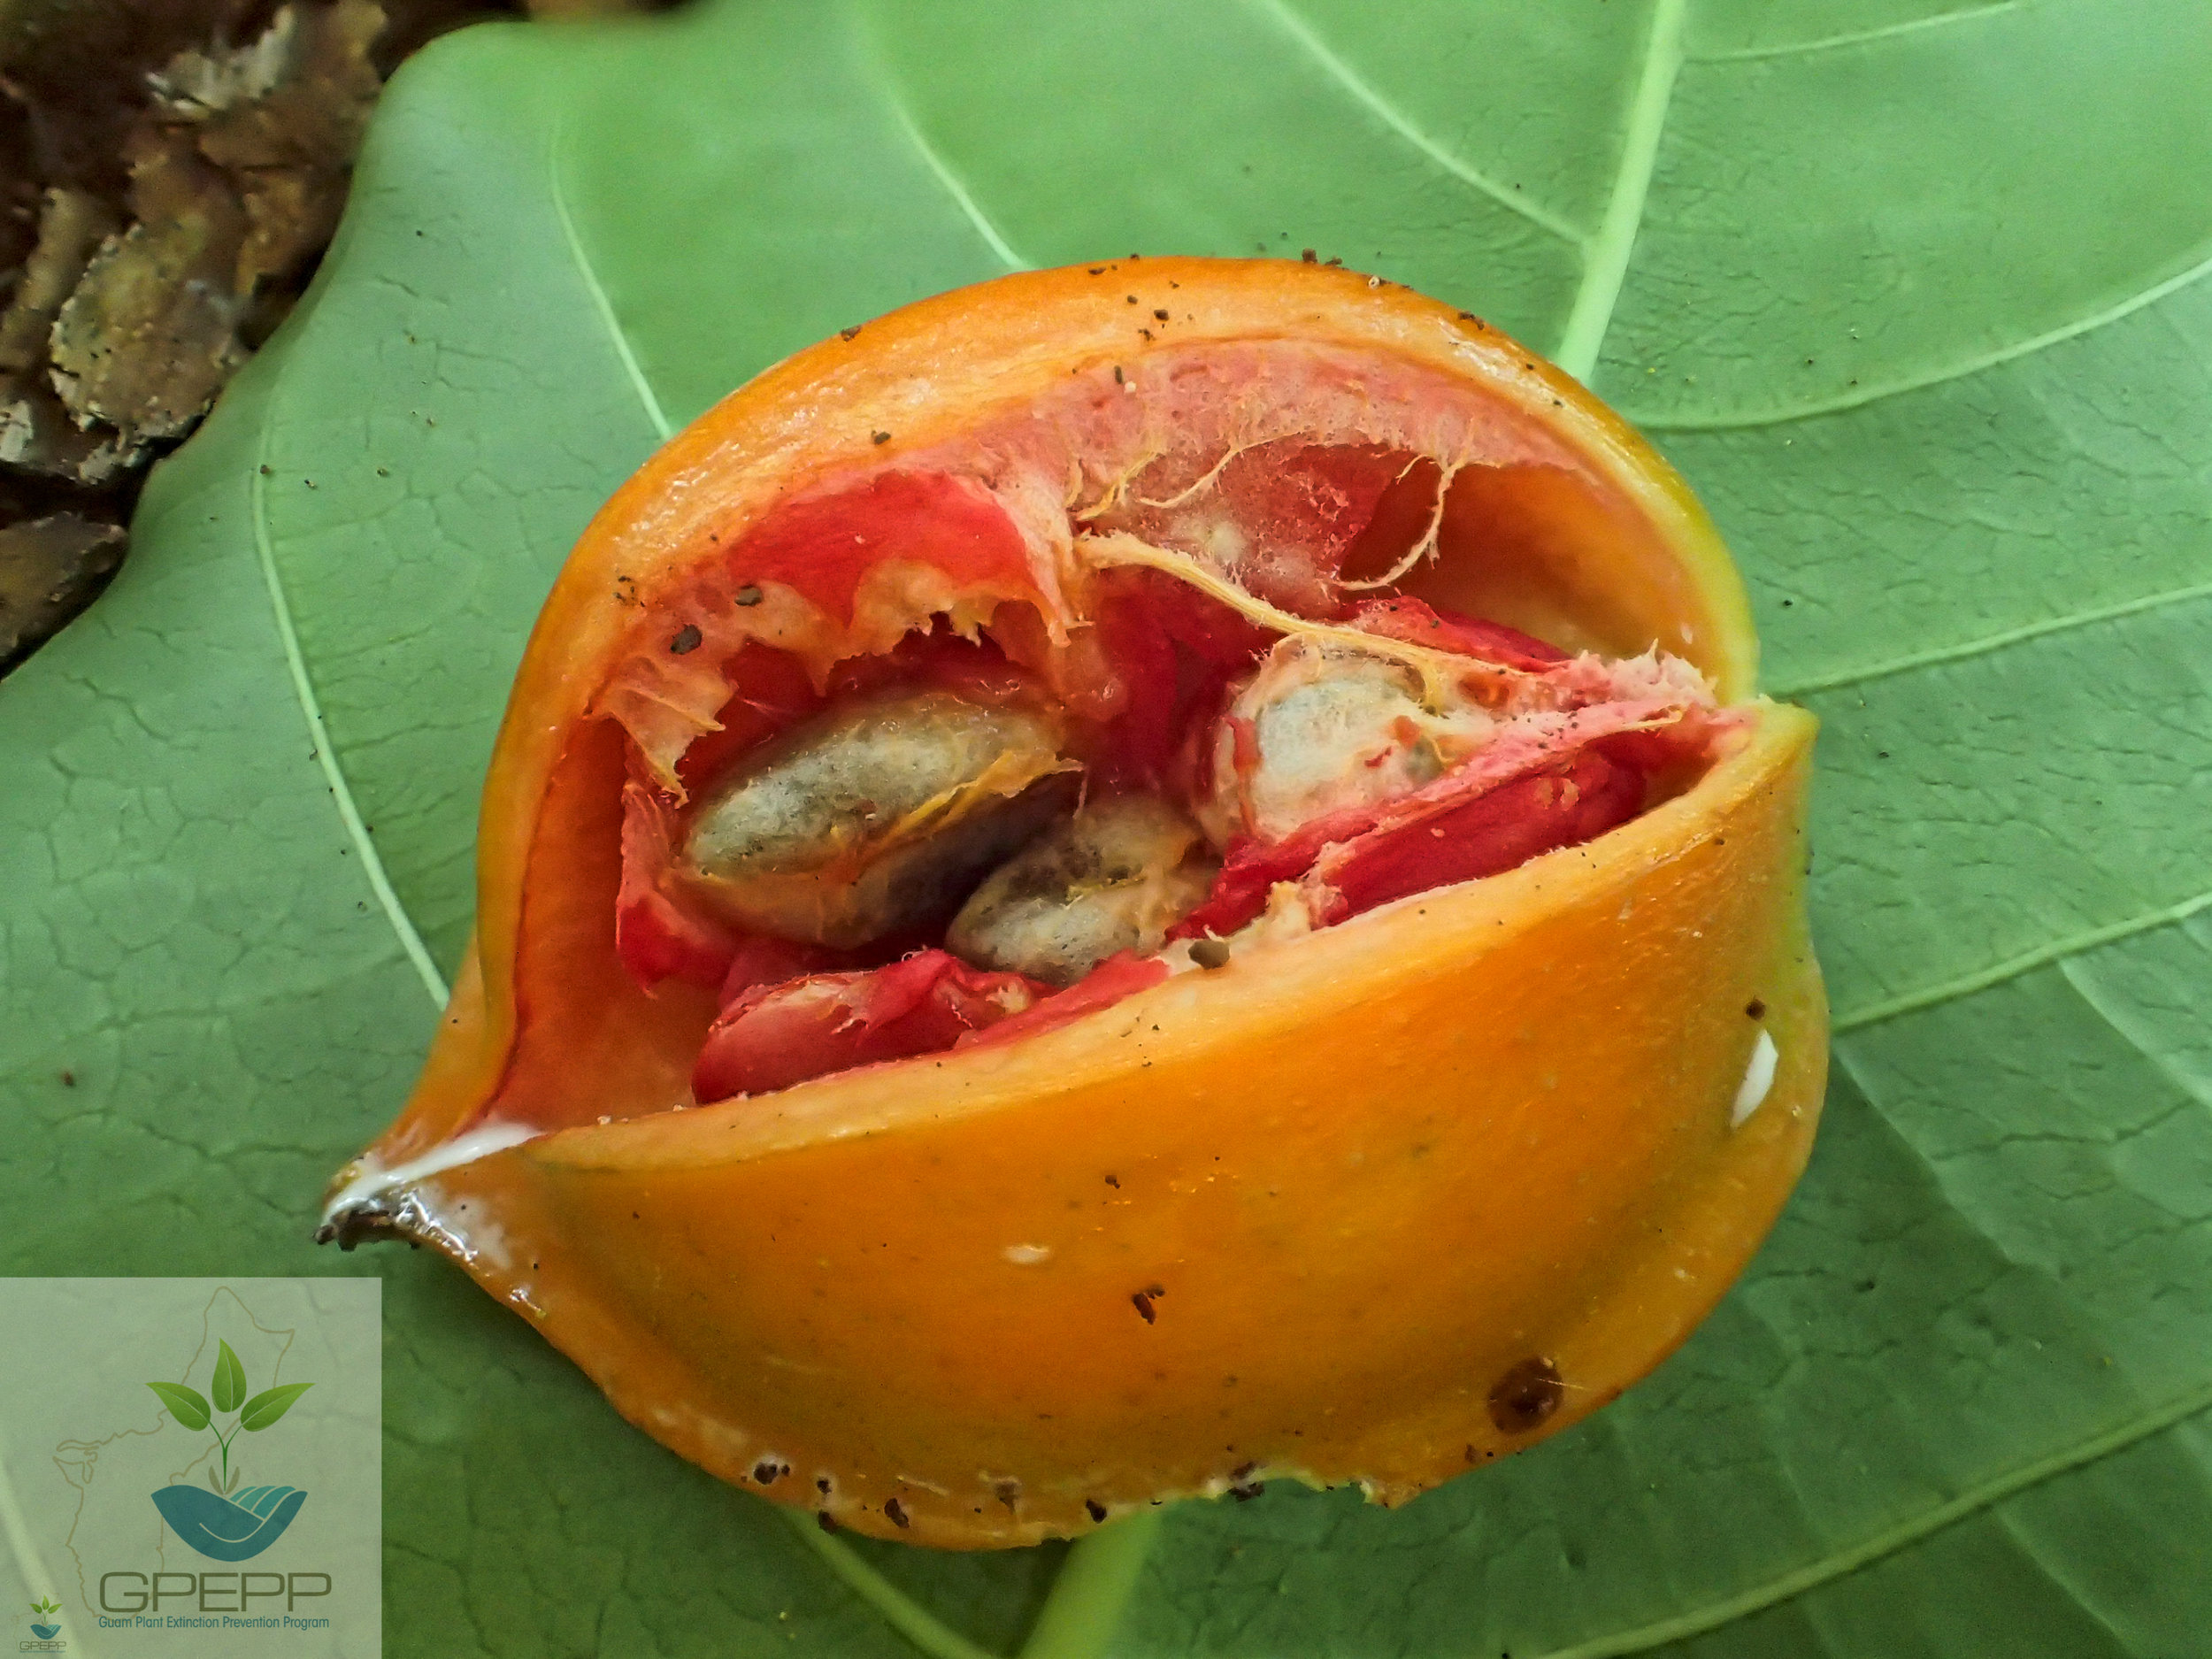 Mature fruit, naturally split open, exposing red flesh surrounding the seeds.